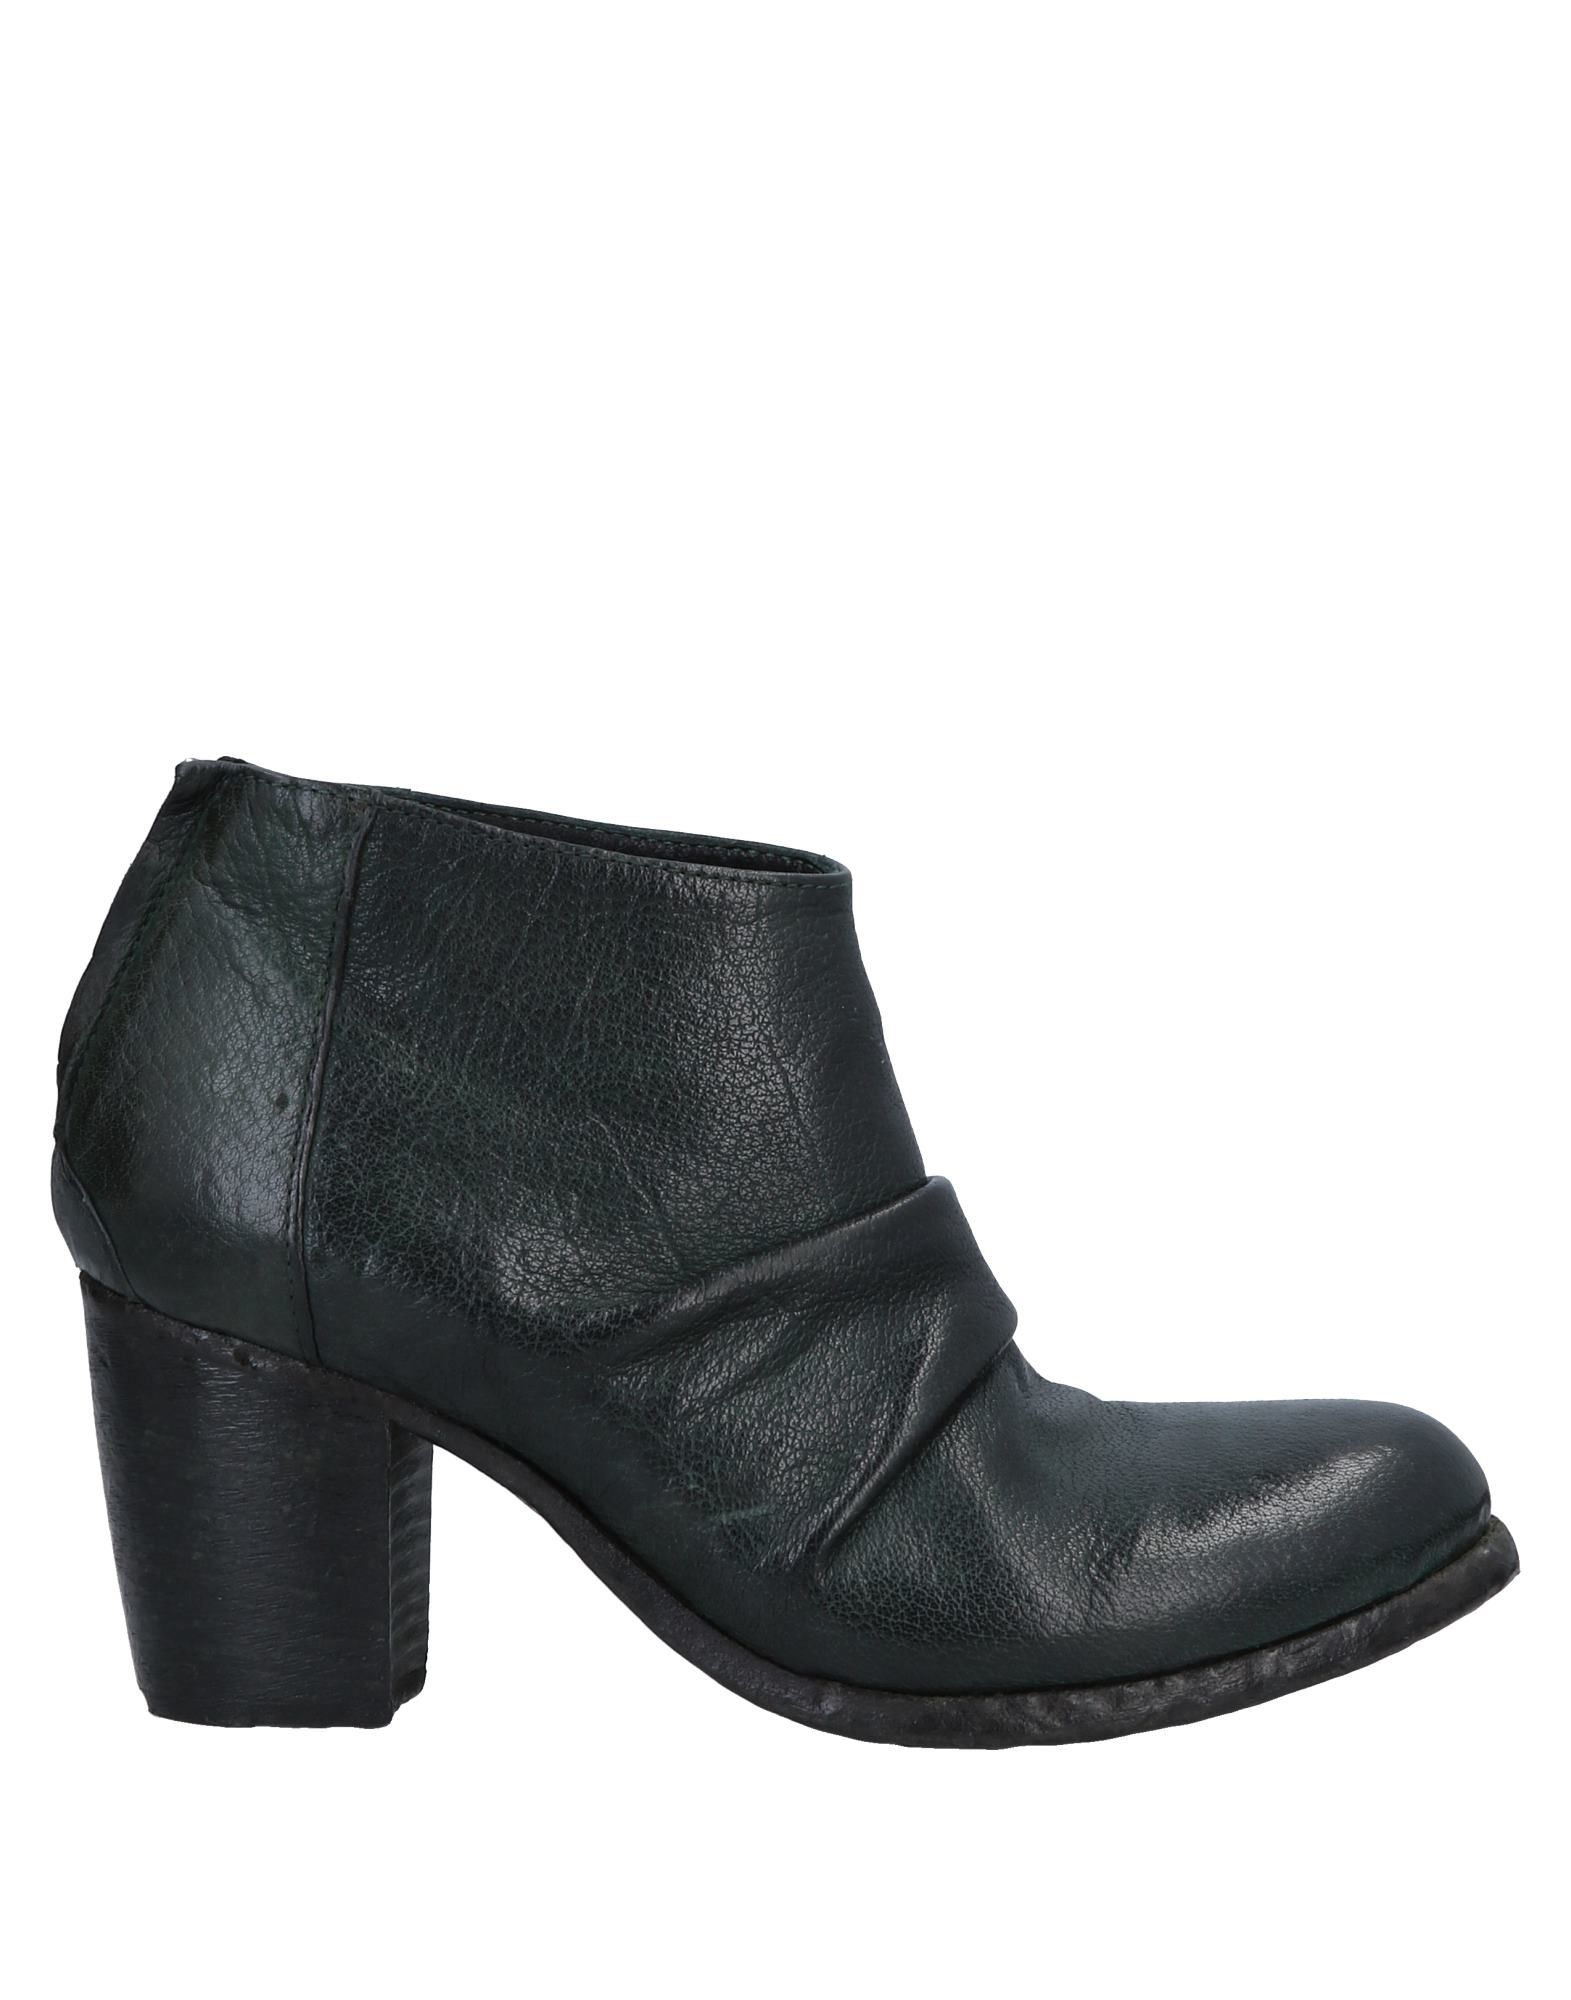 Open Closed  Shoes Ankle Boot Boot Ankle - Women Open Closed  Shoes Ankle Boots online on  Australia - 11569705OB b60549